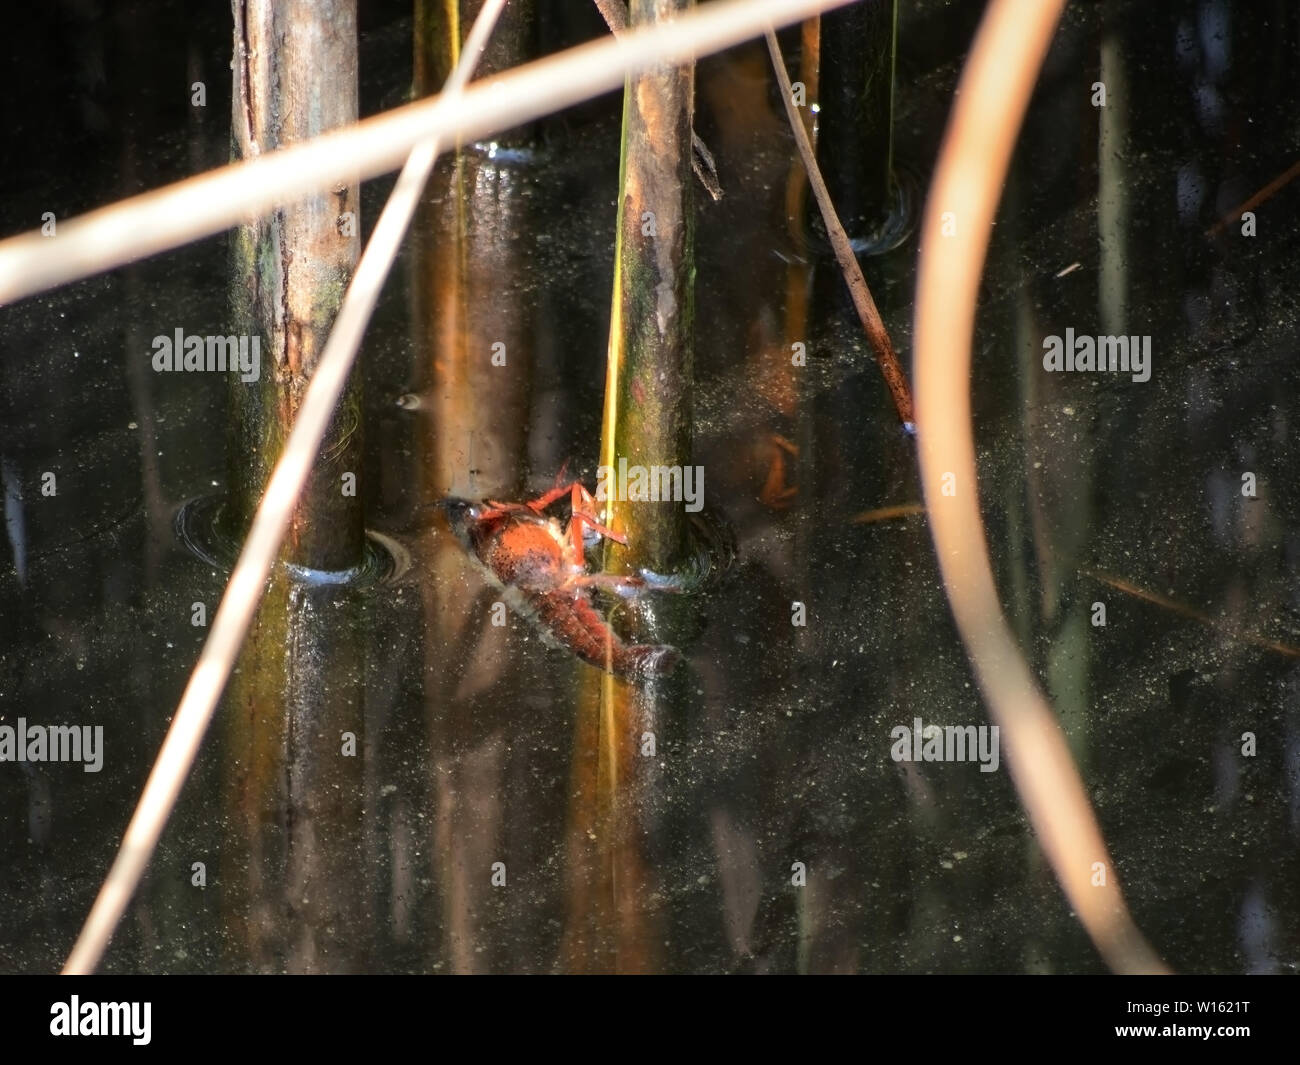 Procambarus Clarkii crayfish, clinging to reeds in Italian waterway. Once pets, released into the wild these animals have become invasive pests. - Stock Image